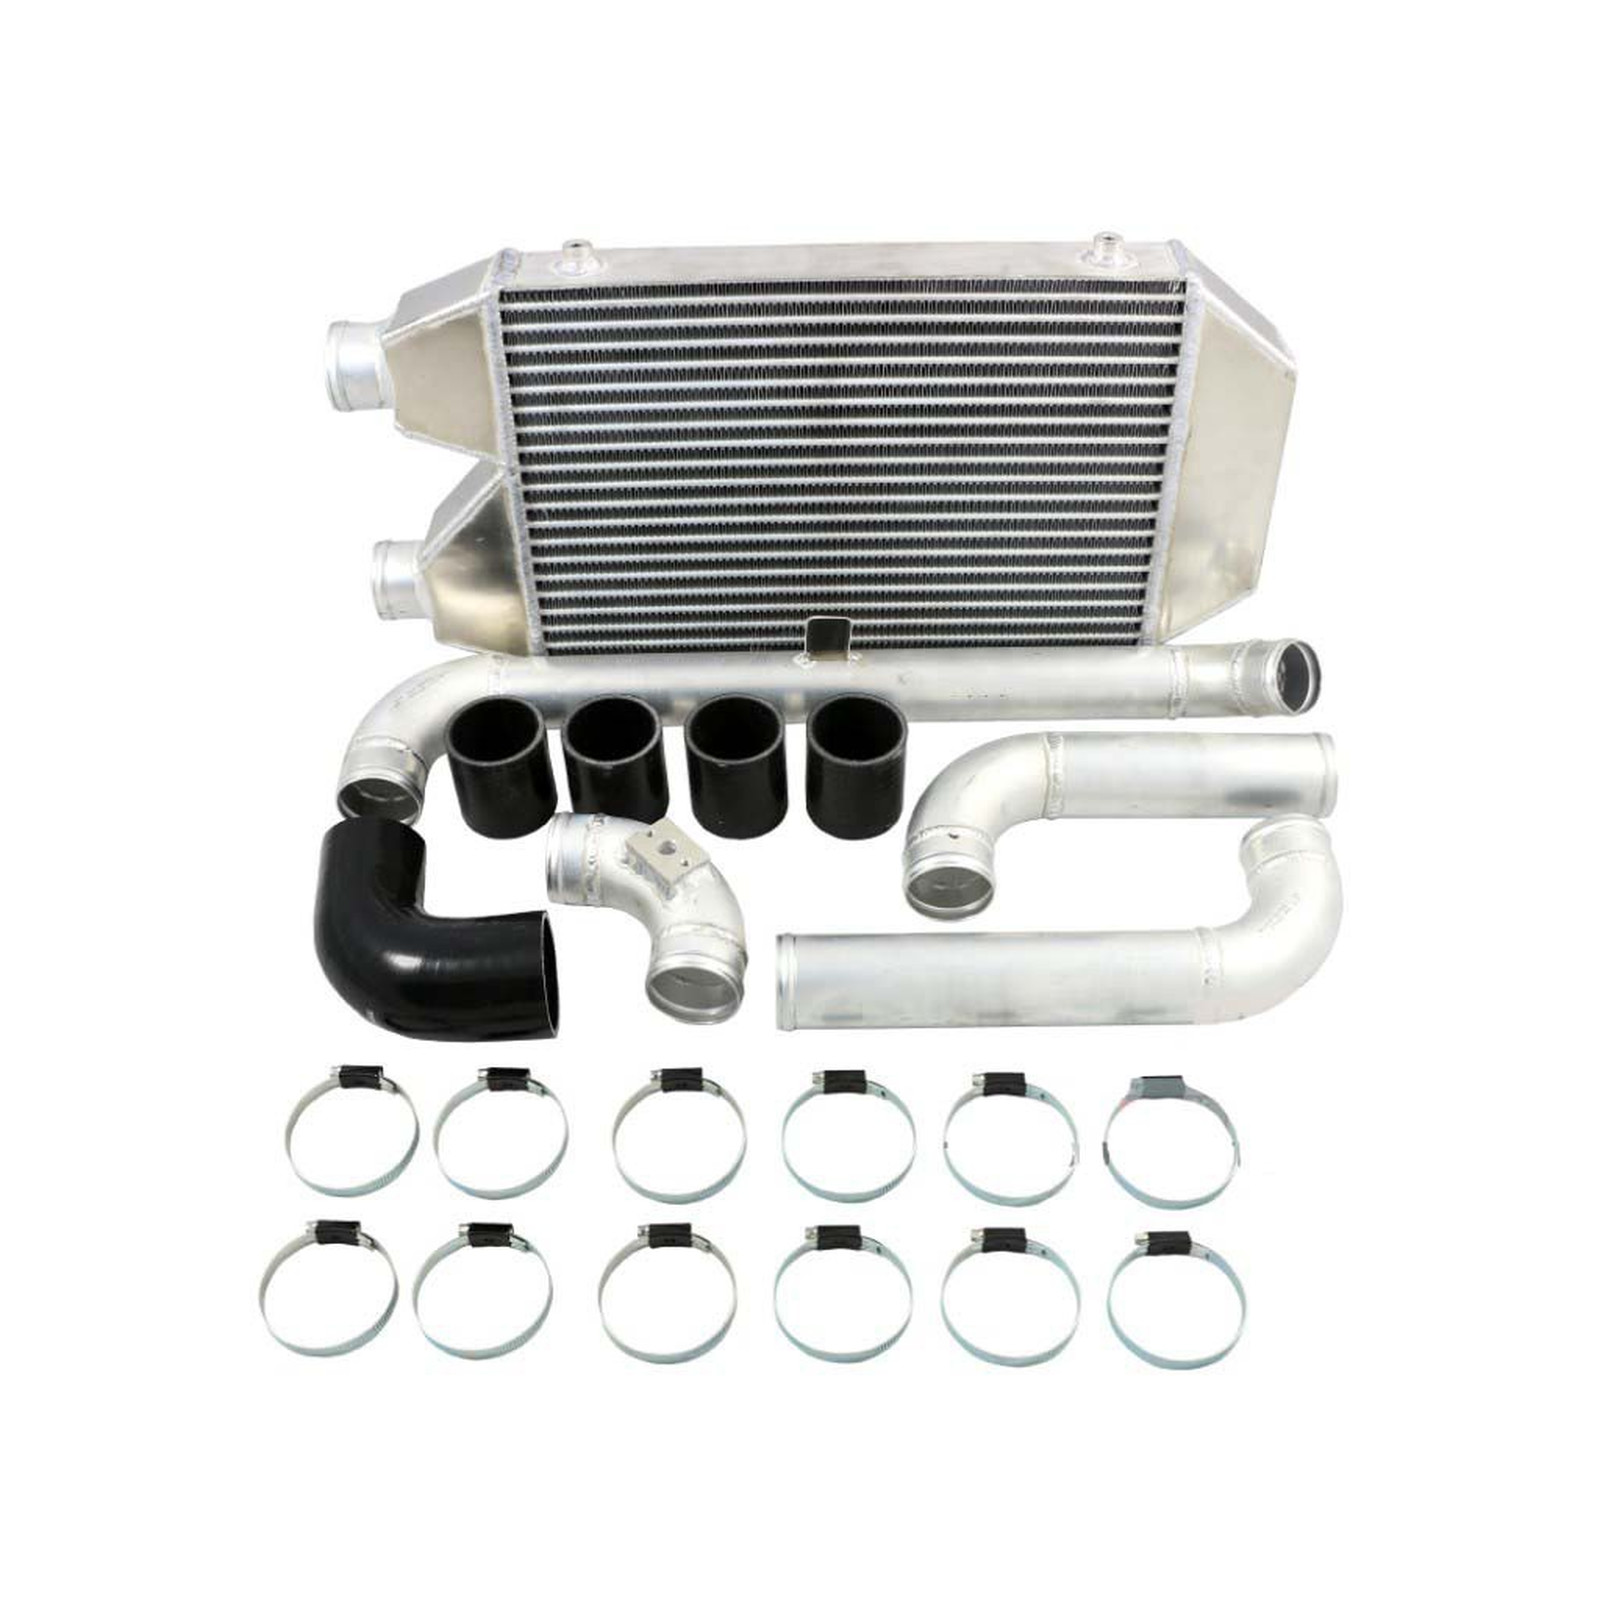 front mount intercooler vw golf 4 tdi 812 72. Black Bedroom Furniture Sets. Home Design Ideas